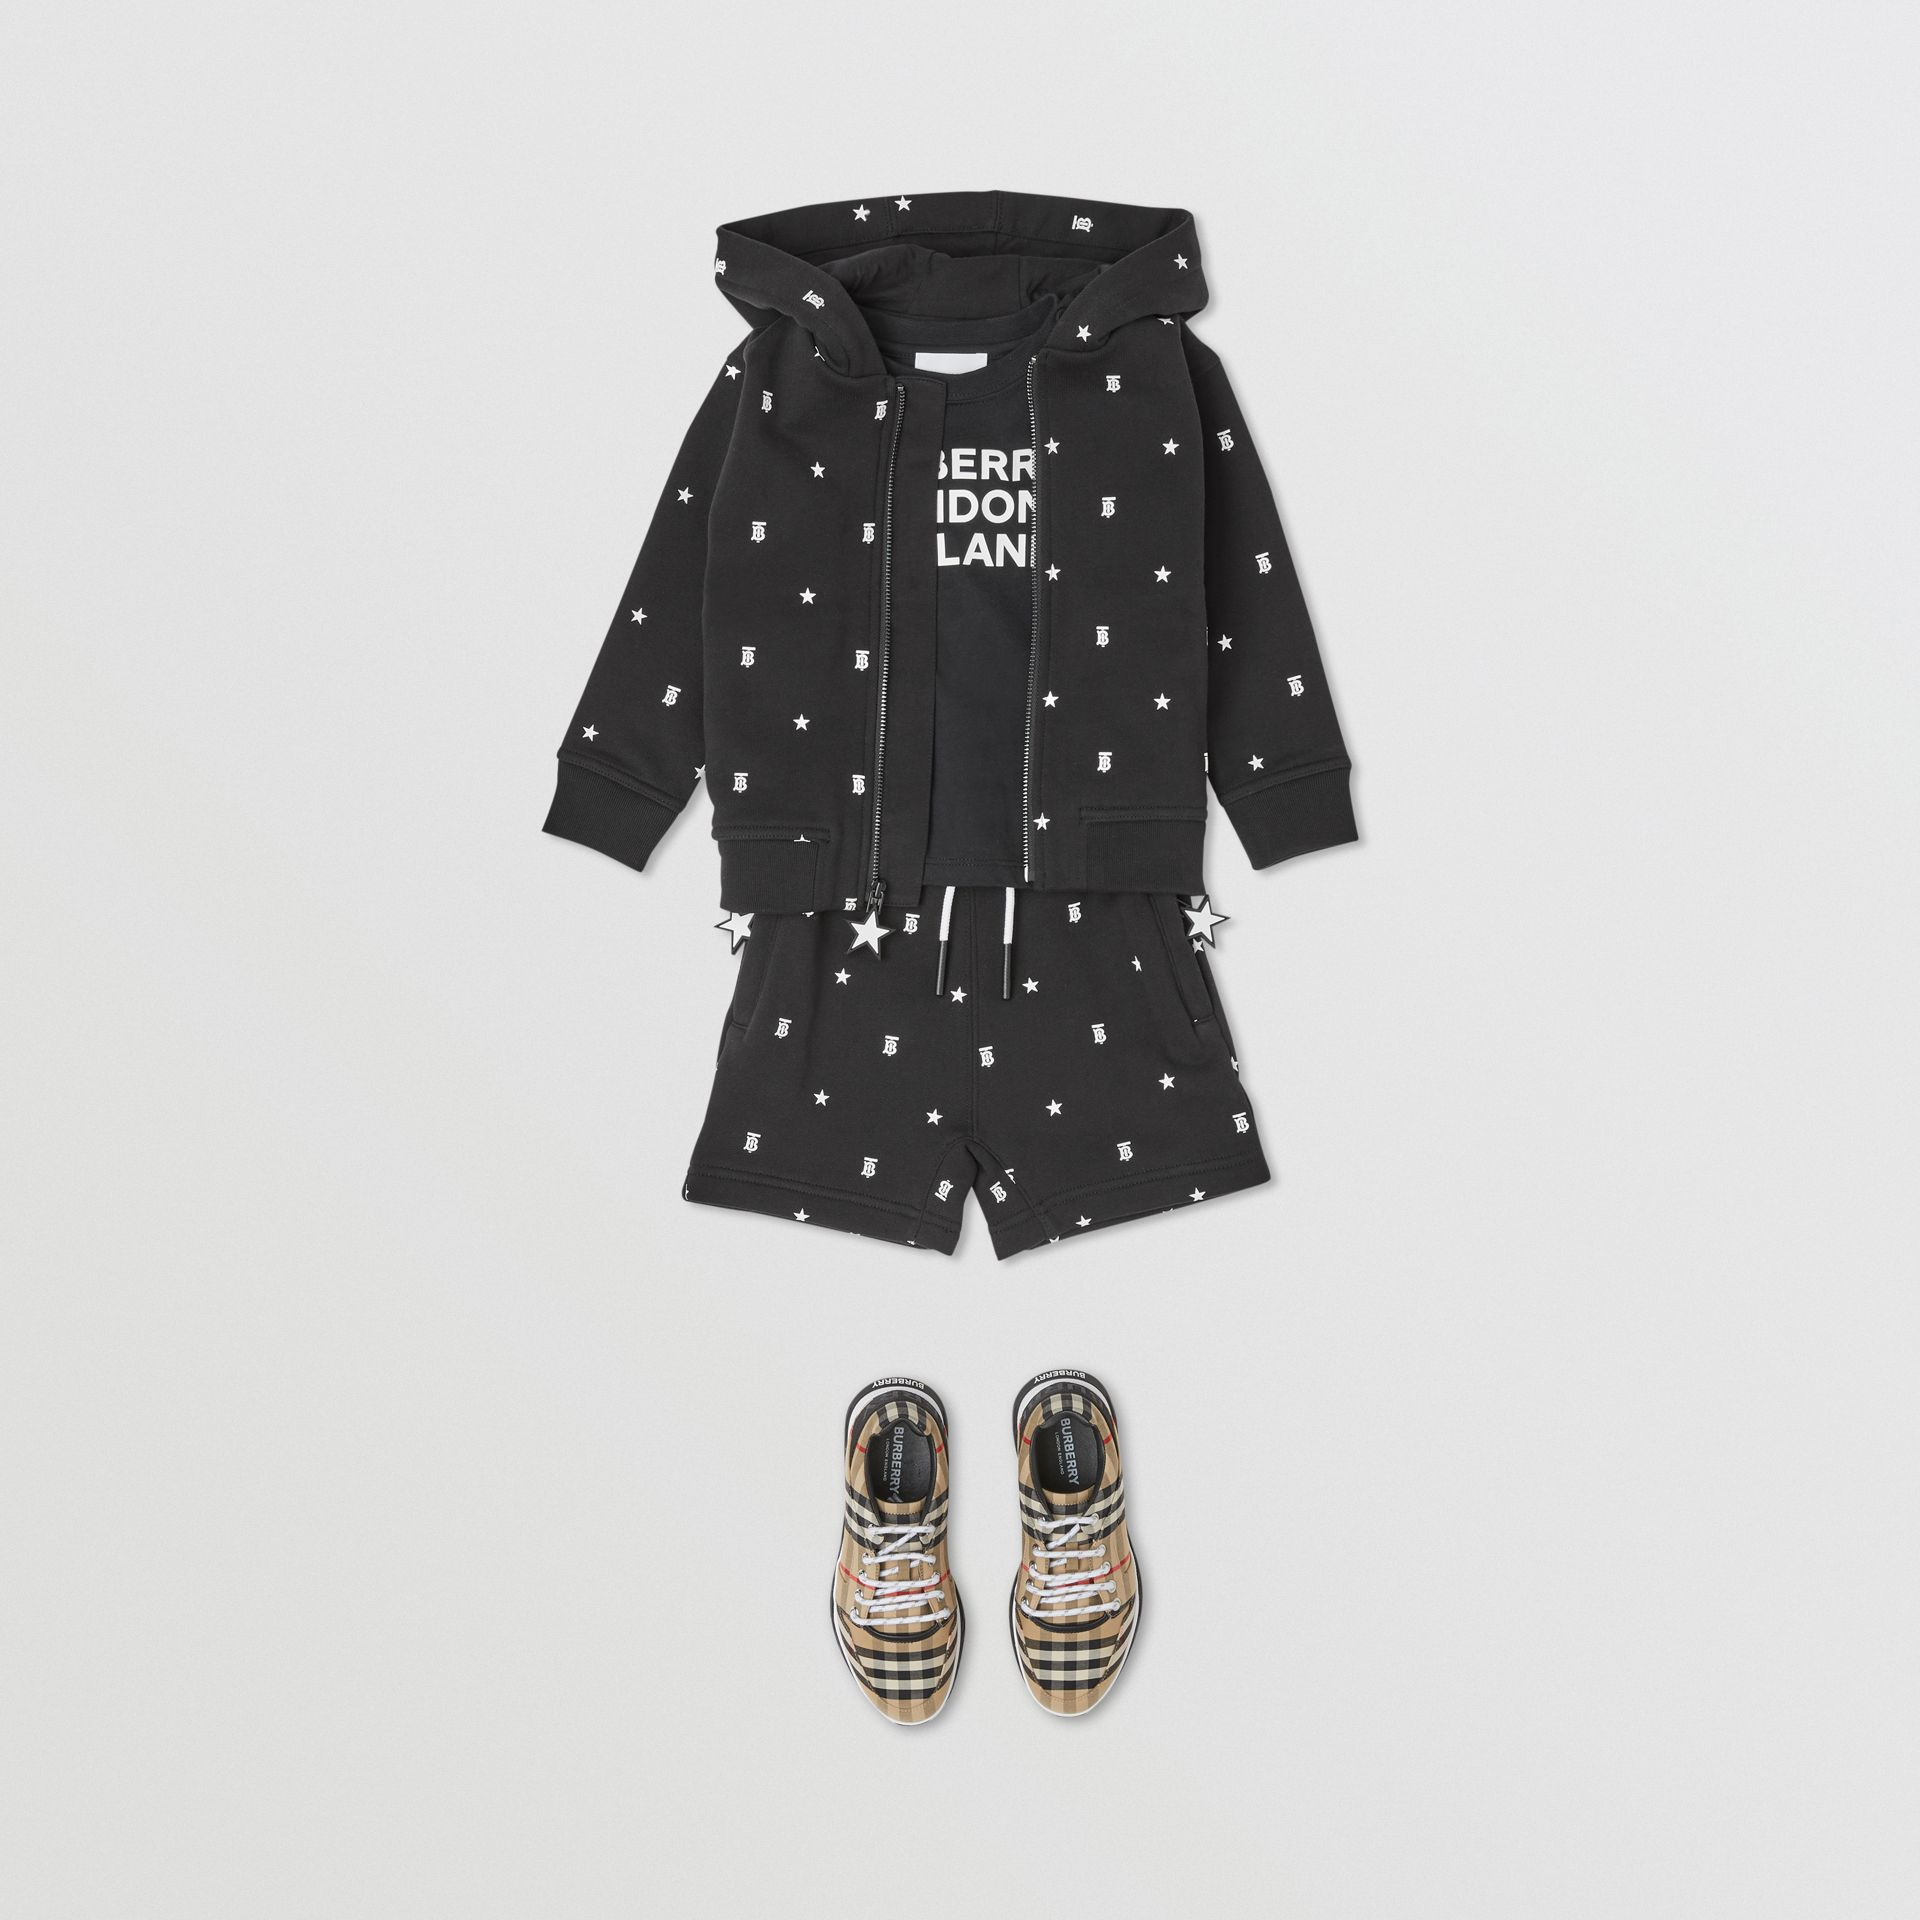 Star and Monogram Motif Cotton Shorts in Black - Children | Burberry - gallery image 3